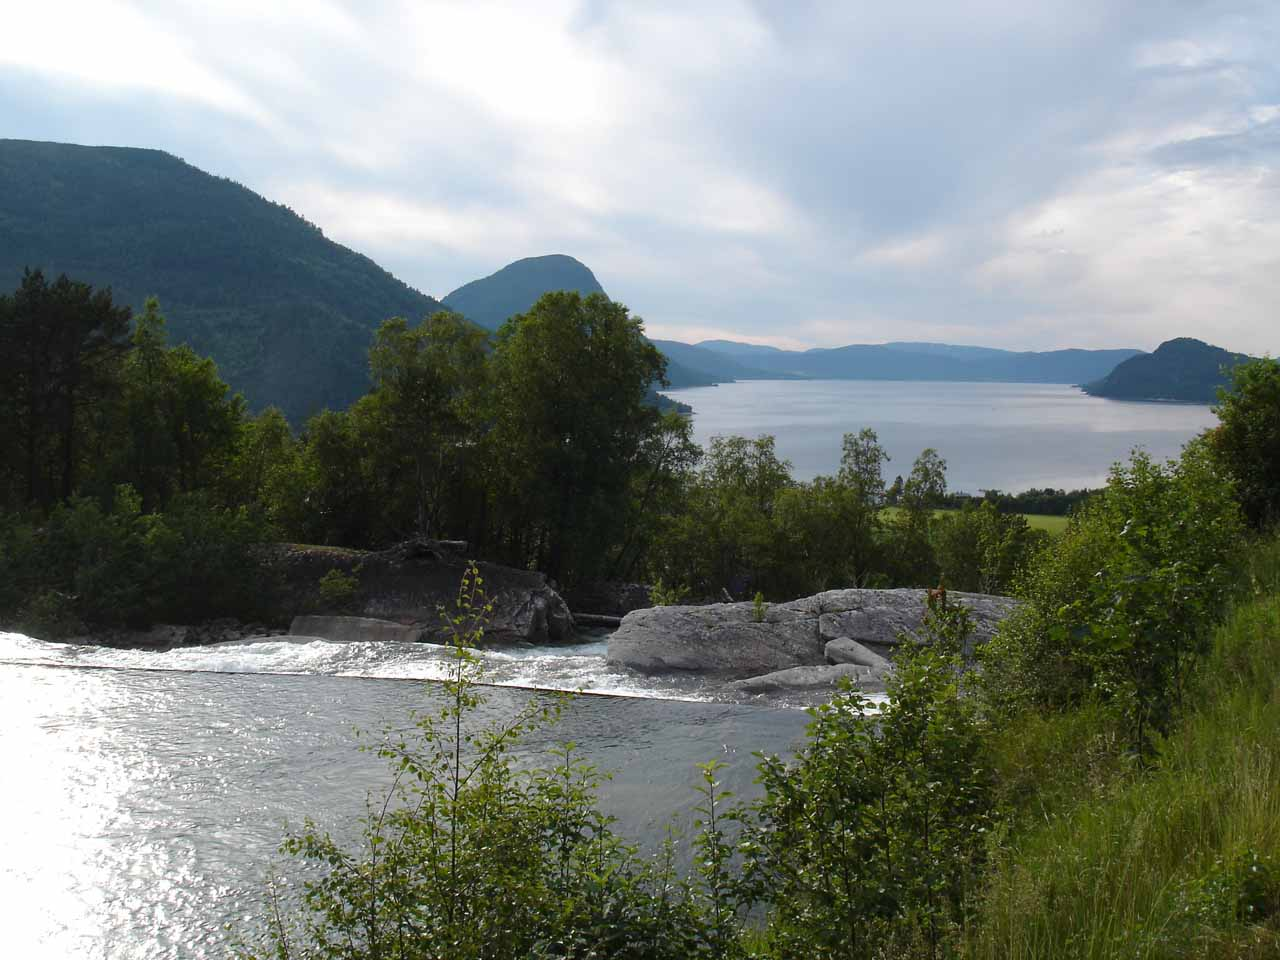 It took a bit of a detour to make it all the way to Nauståfossen from Sunndalsøra, but we at least got this attractive view of where the Todalselva emptied into Todalsfjorden